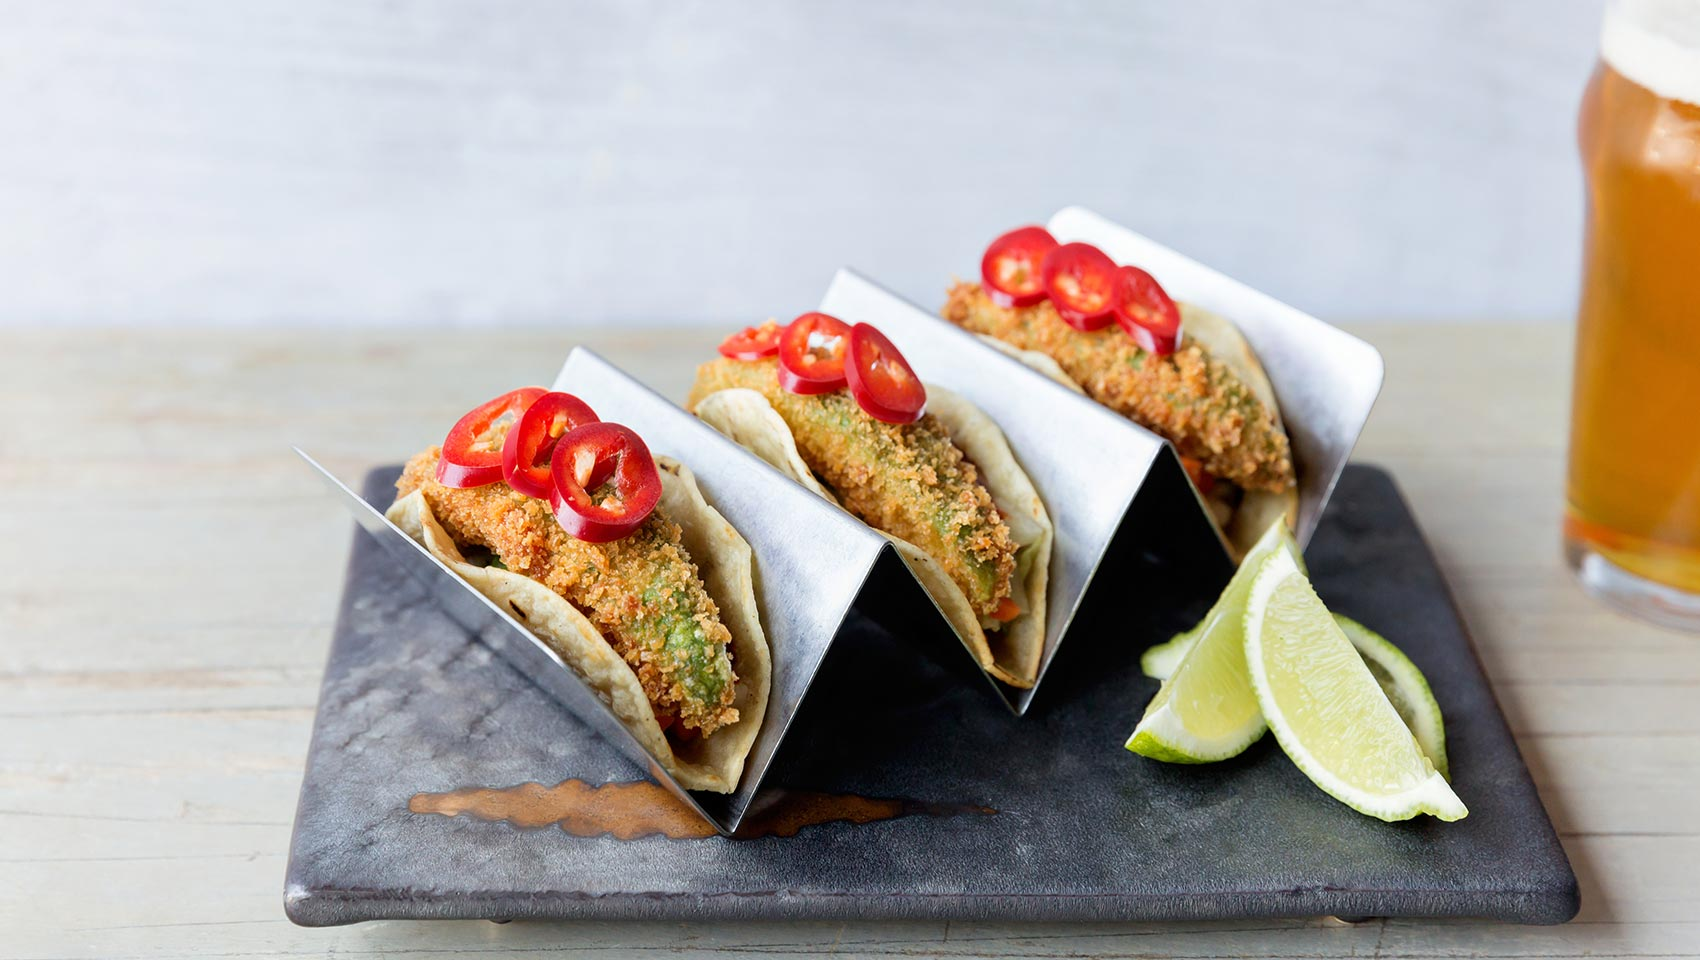 kimpton-pacific-hideaway-restaurant-huntington-beach-fried-avocado-tacos